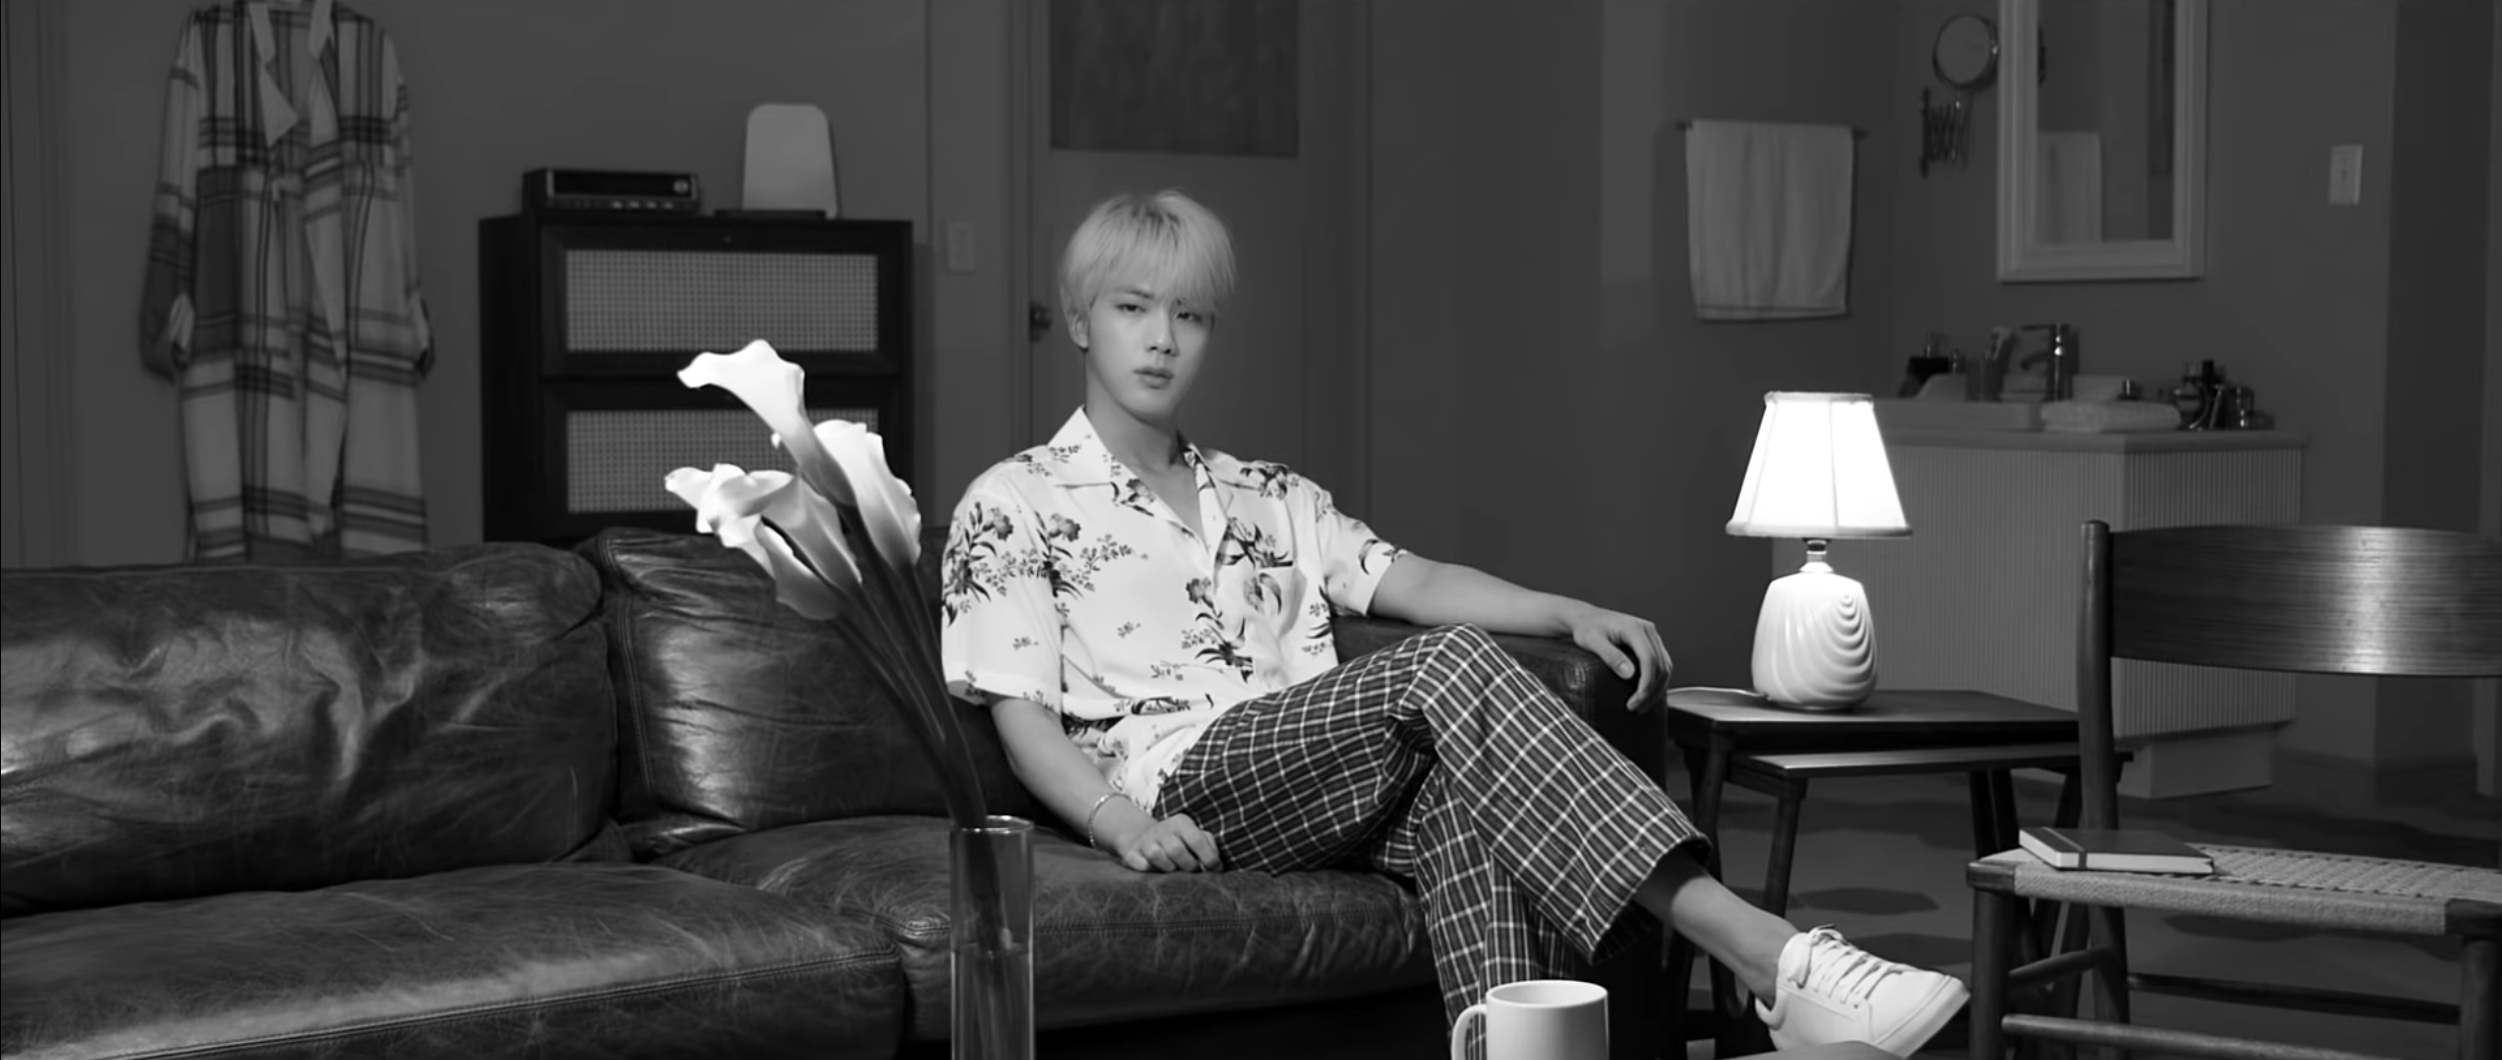 Jin Delivers An Important Message About Self-Love BTS